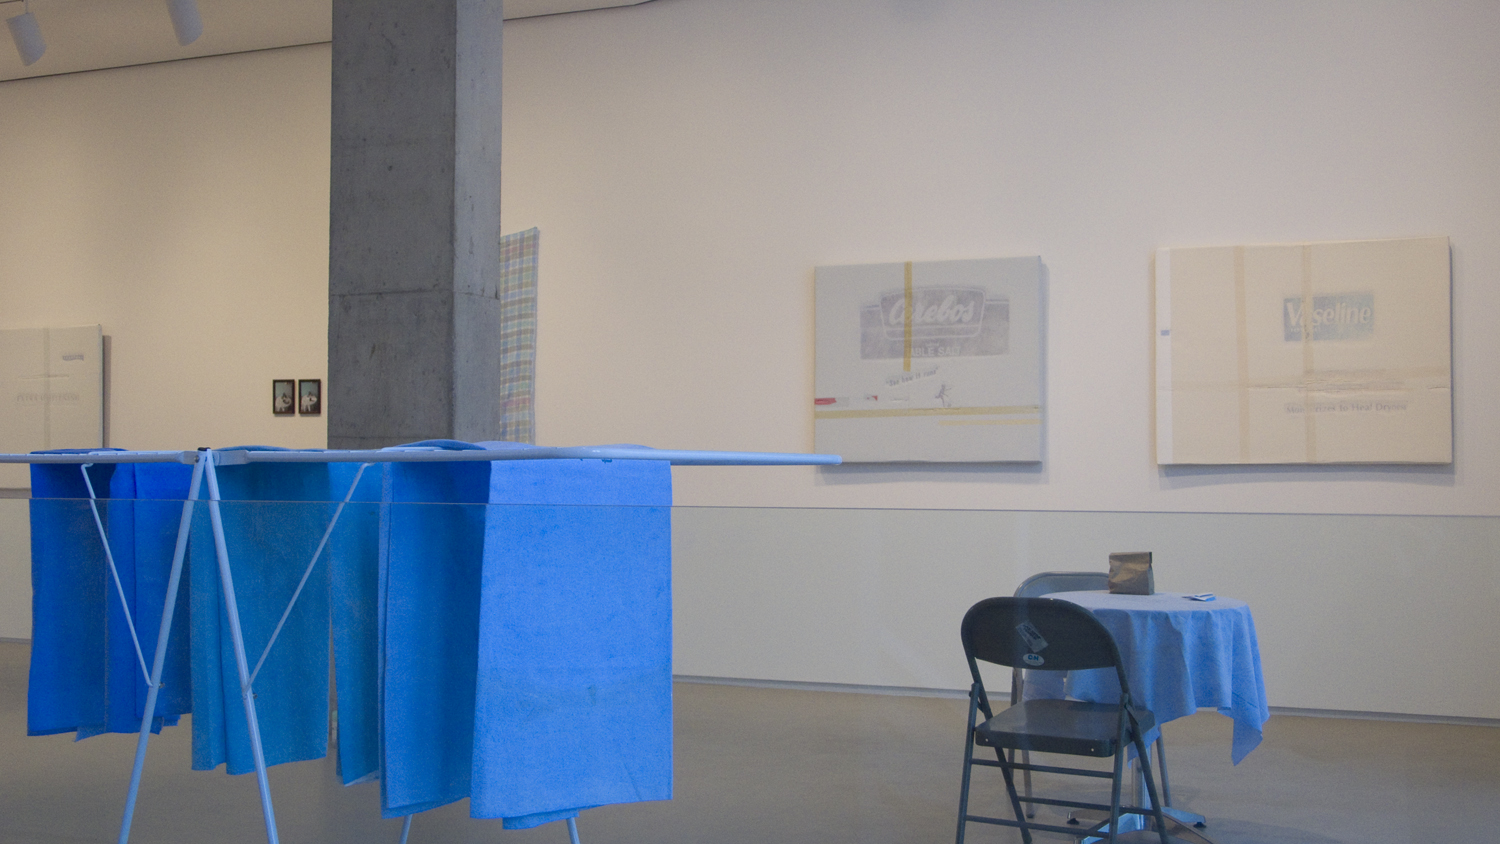 Lee Kit   1,2,3,4...  , 2011 nstallation view at Lombard Freid Gallery, New York